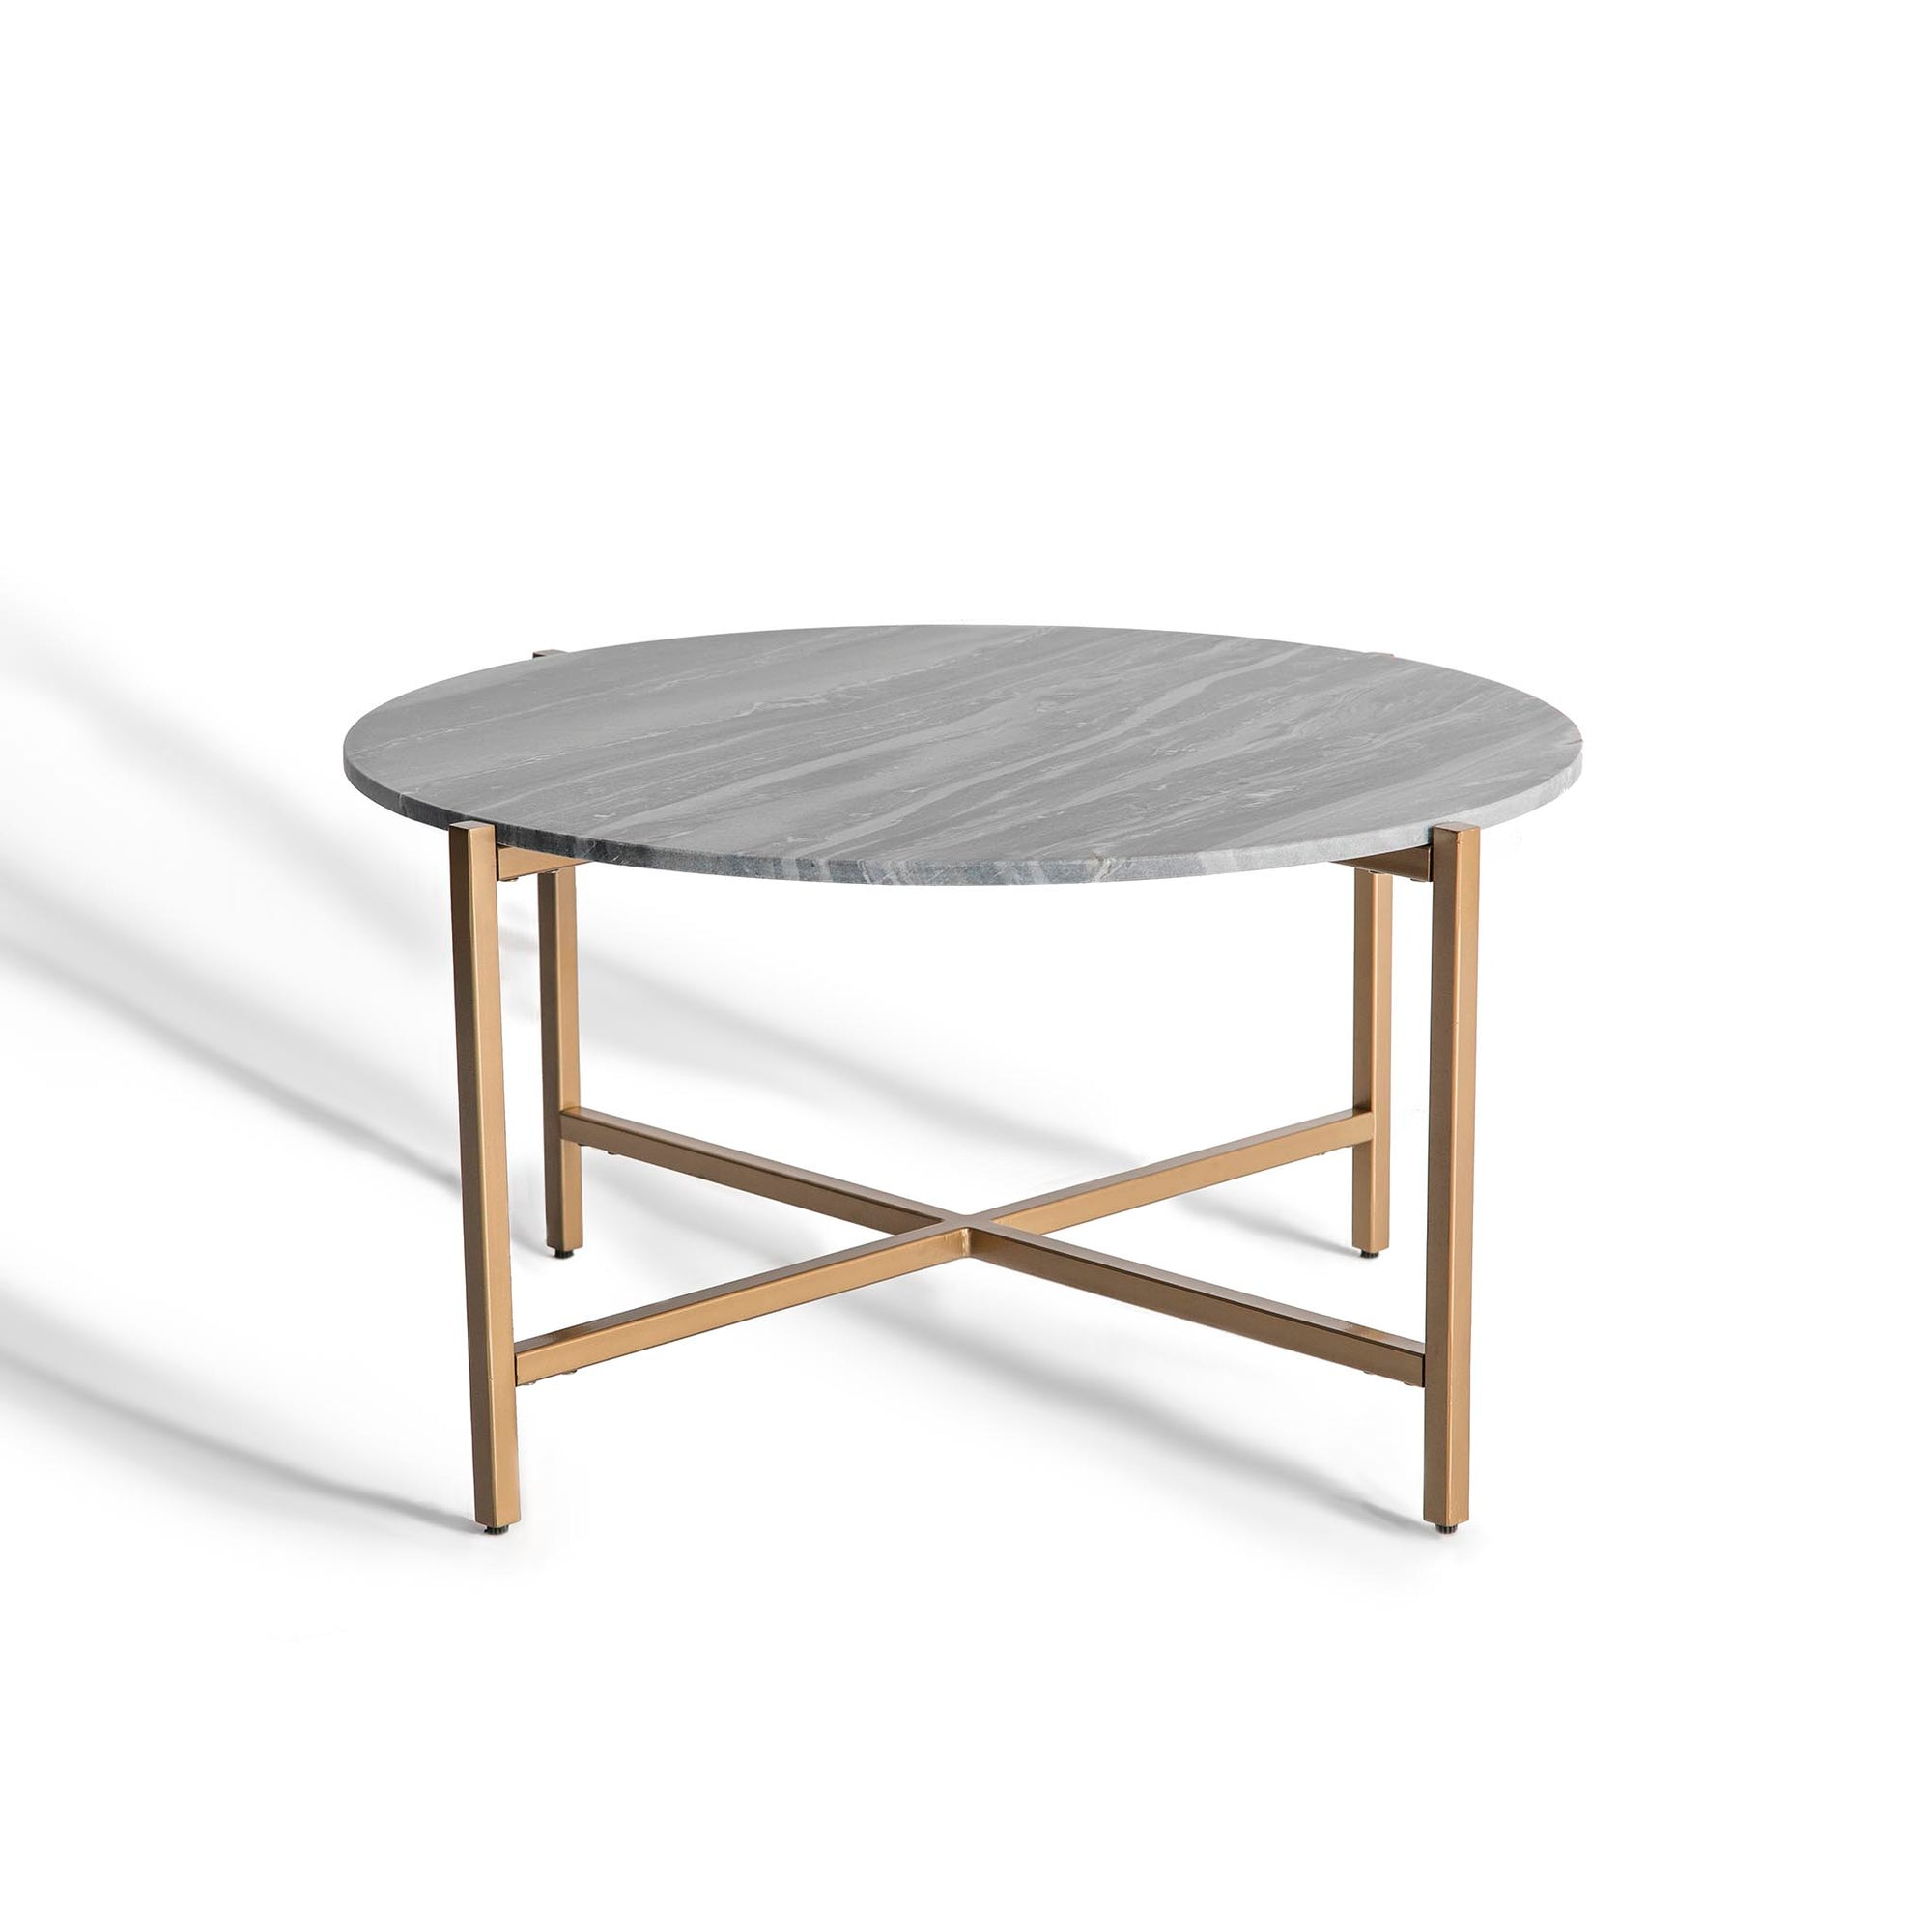 Kandla Grey Round Coffee Table with Gold Base by Roseland Furniture